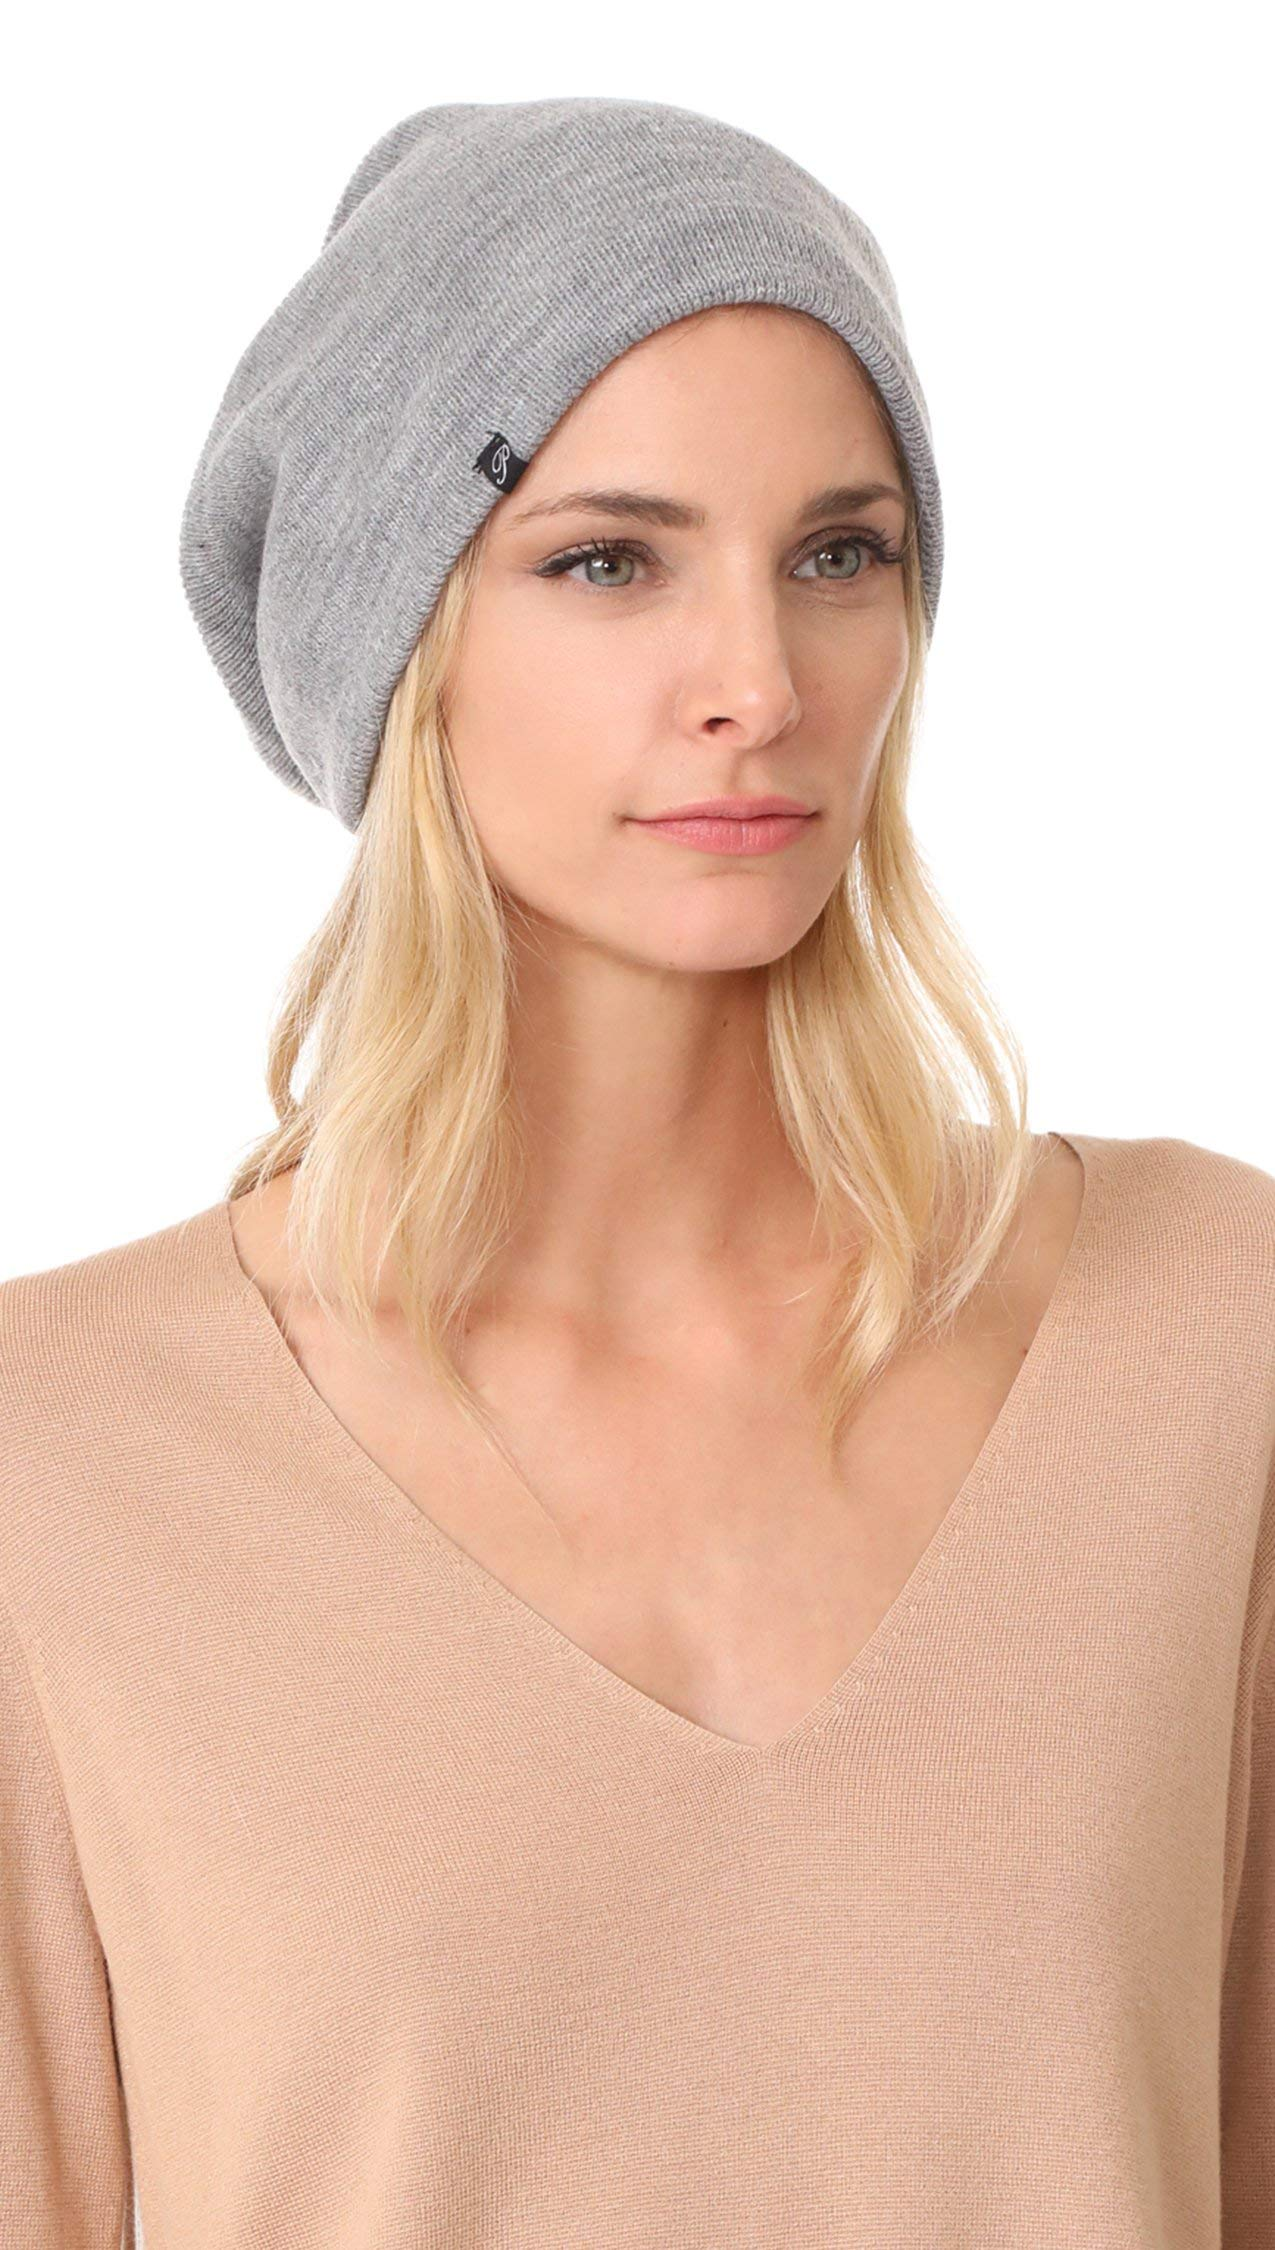 Plush Barca Slouchy Fit Fleece Lined Beanie Hat (Grey)